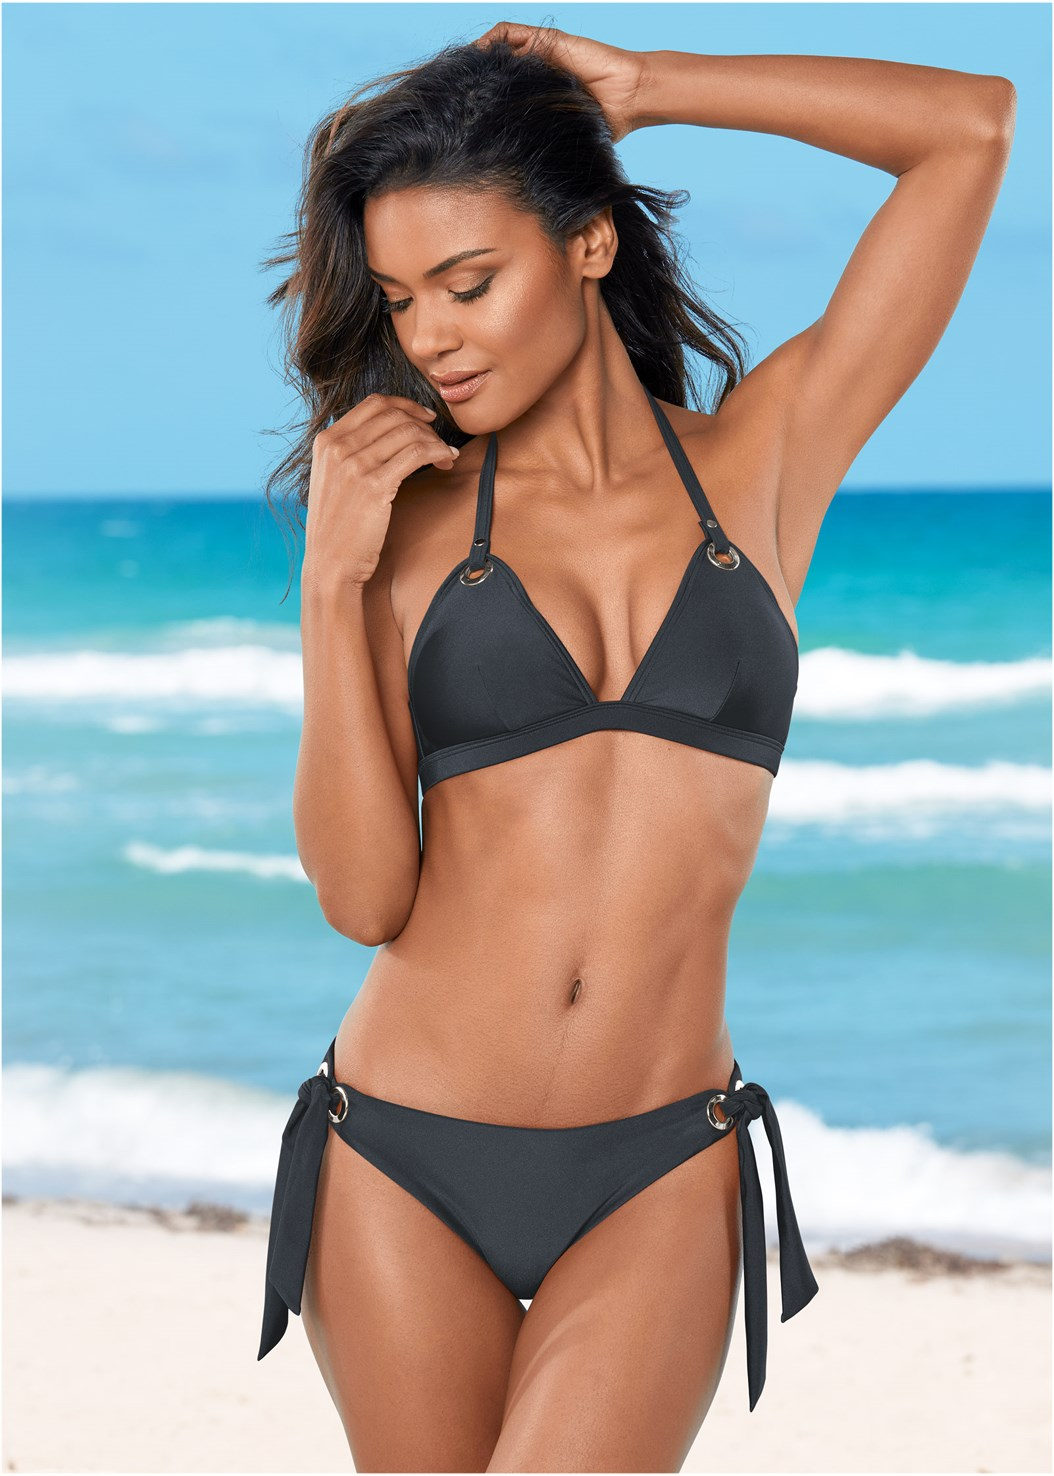 Grommet Triangle Top,Grommet Tie Side Bottom,String Side Bikini Bottom